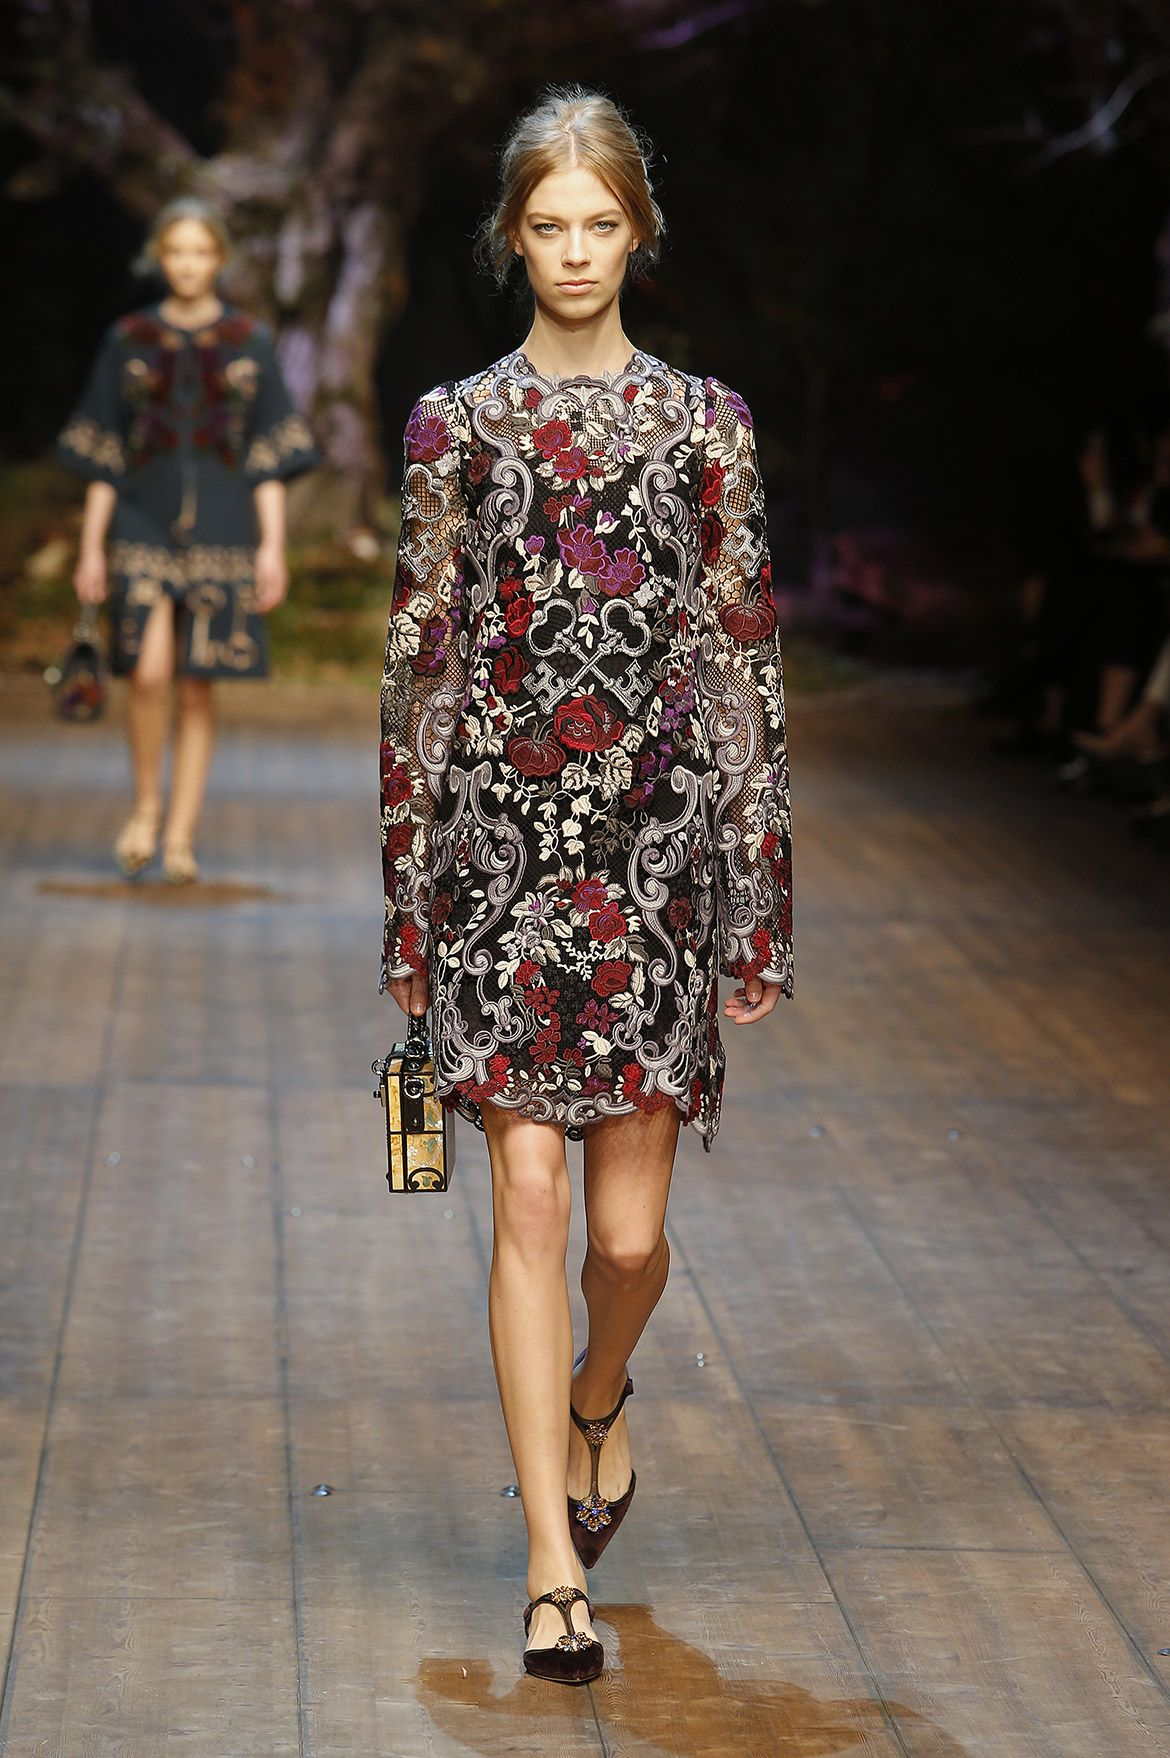 dolce-and-gabbana-fw-2014-2015-women-fashion-show-runway (1)